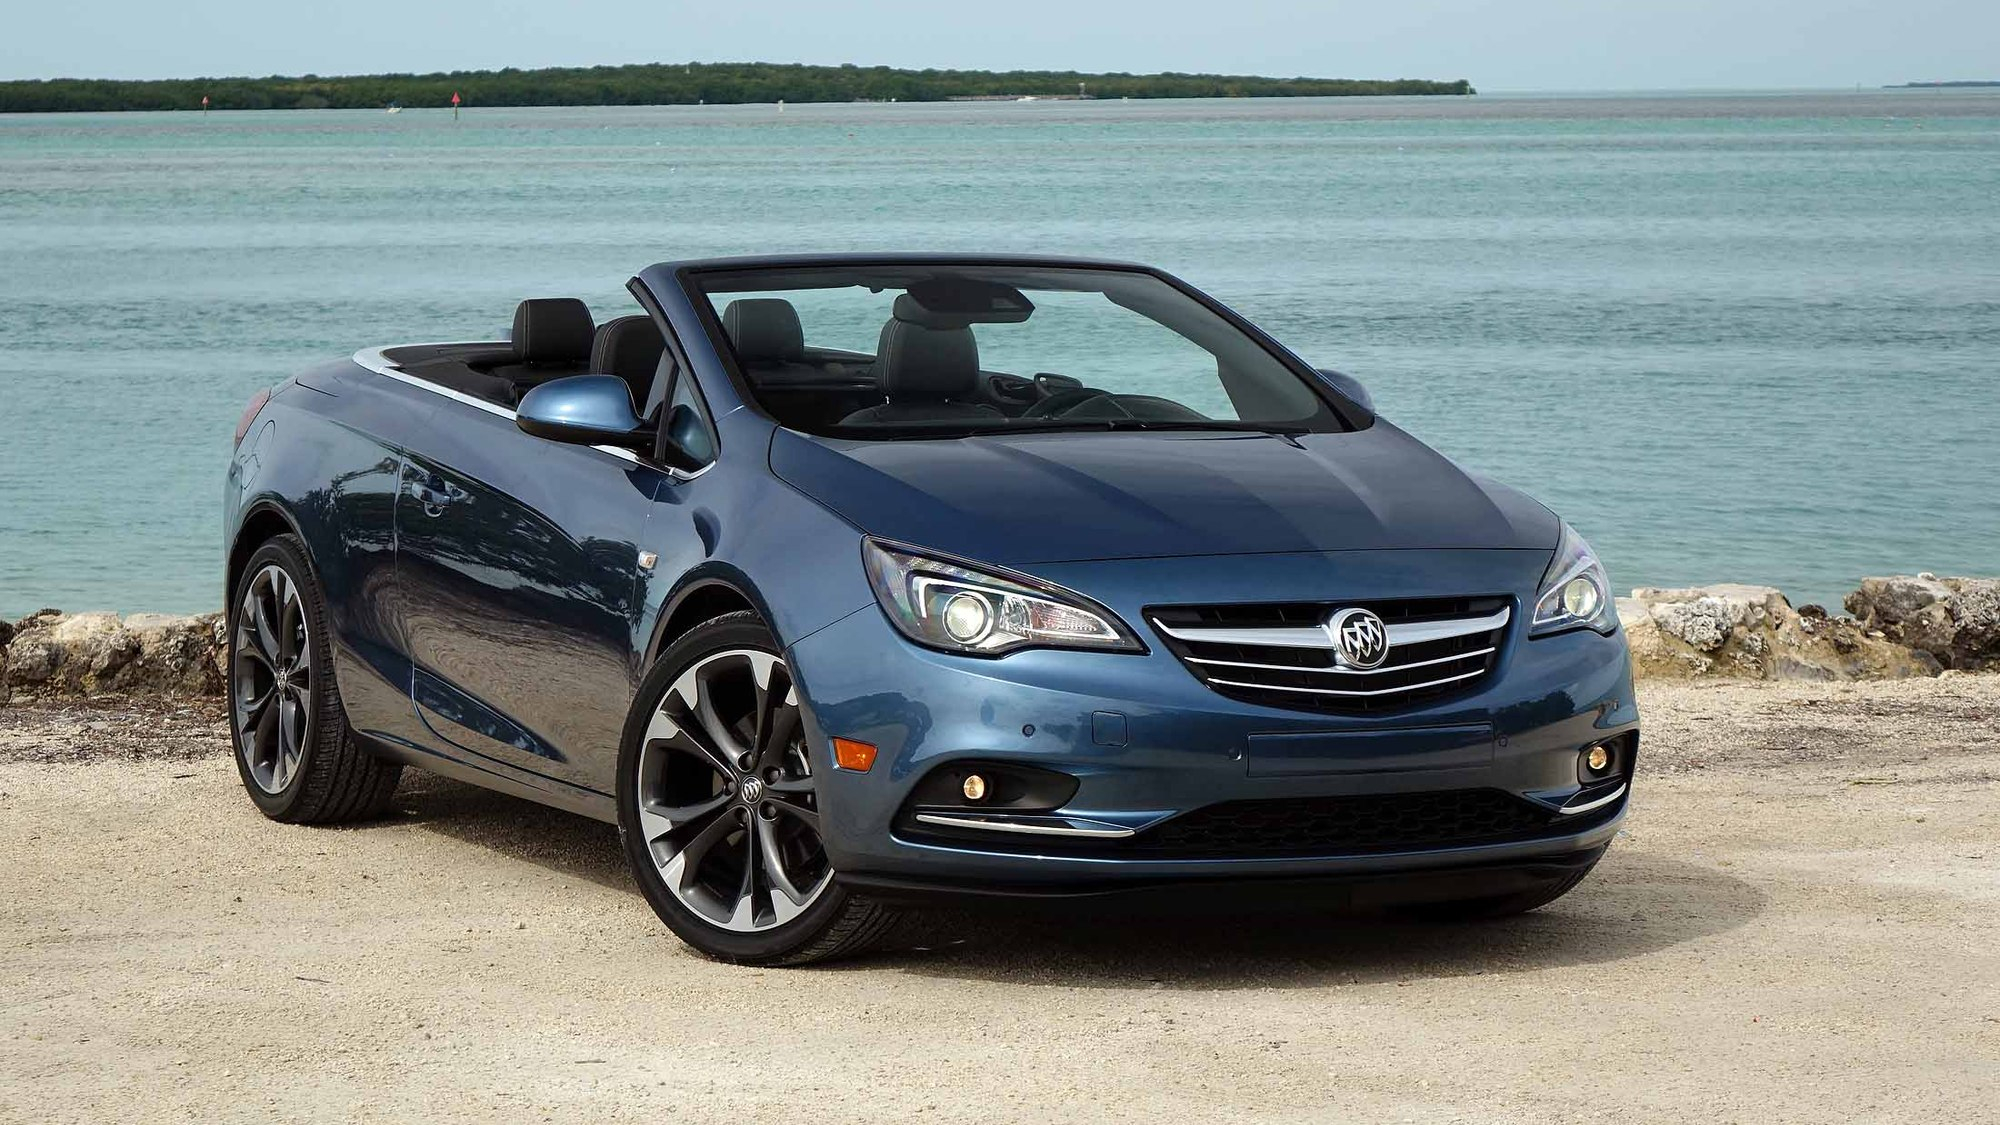 Car Spy Shots, News, Reviews, And Insights - Motor Authority 2022 Buick Cascada Pictures, Remote Start, Release